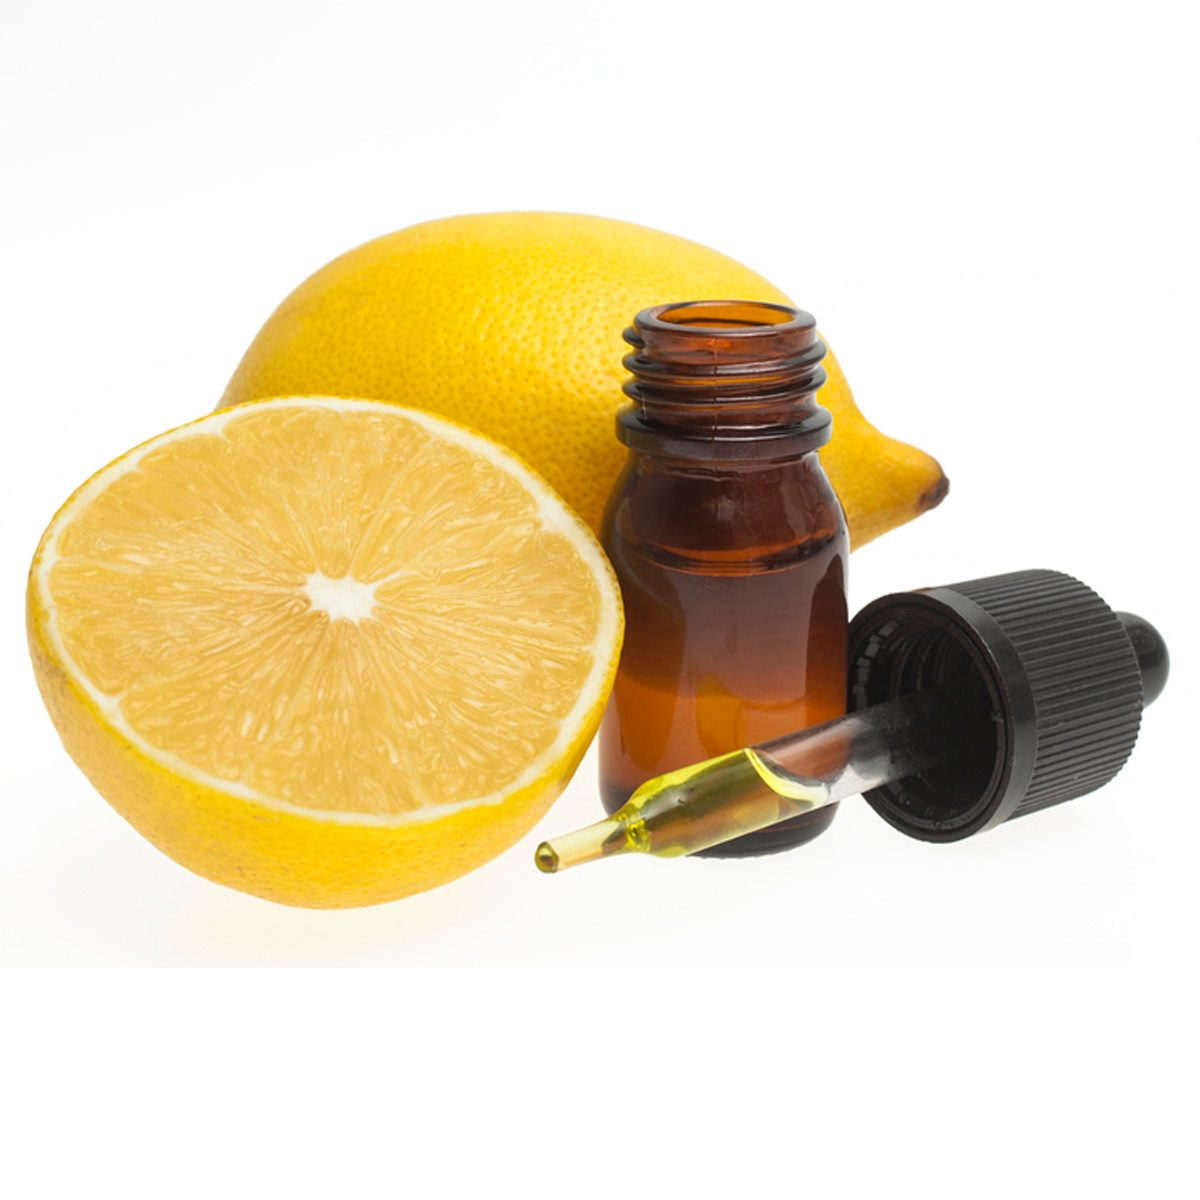 lemon essential oil - what doesn't kill cockroaches